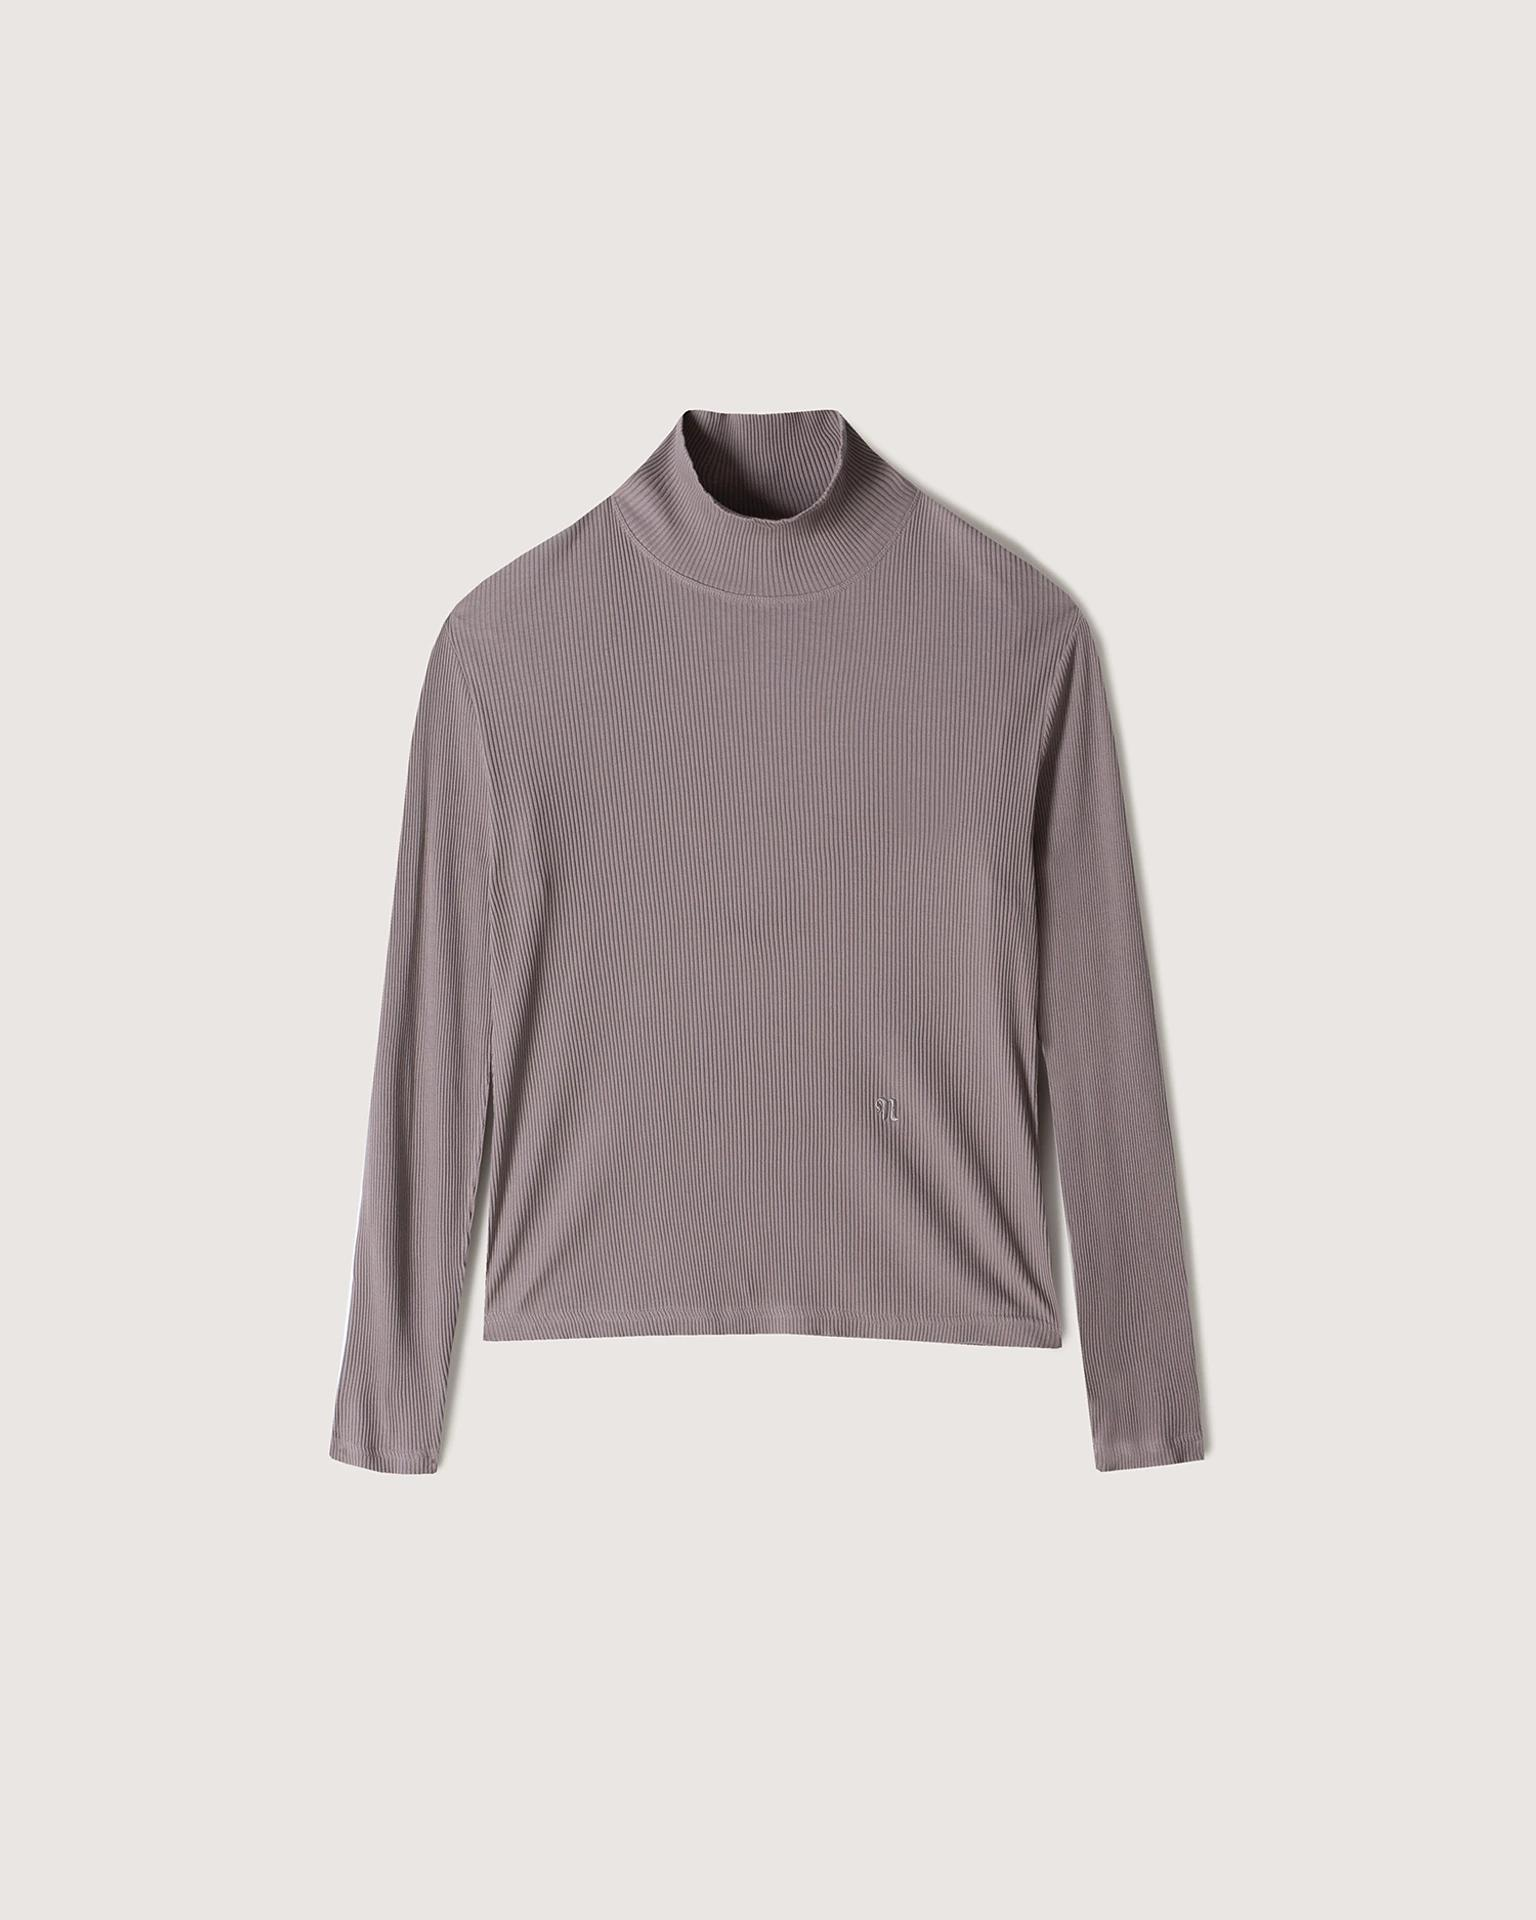 ZORG - Ribbed-jersey top - Washed lilac